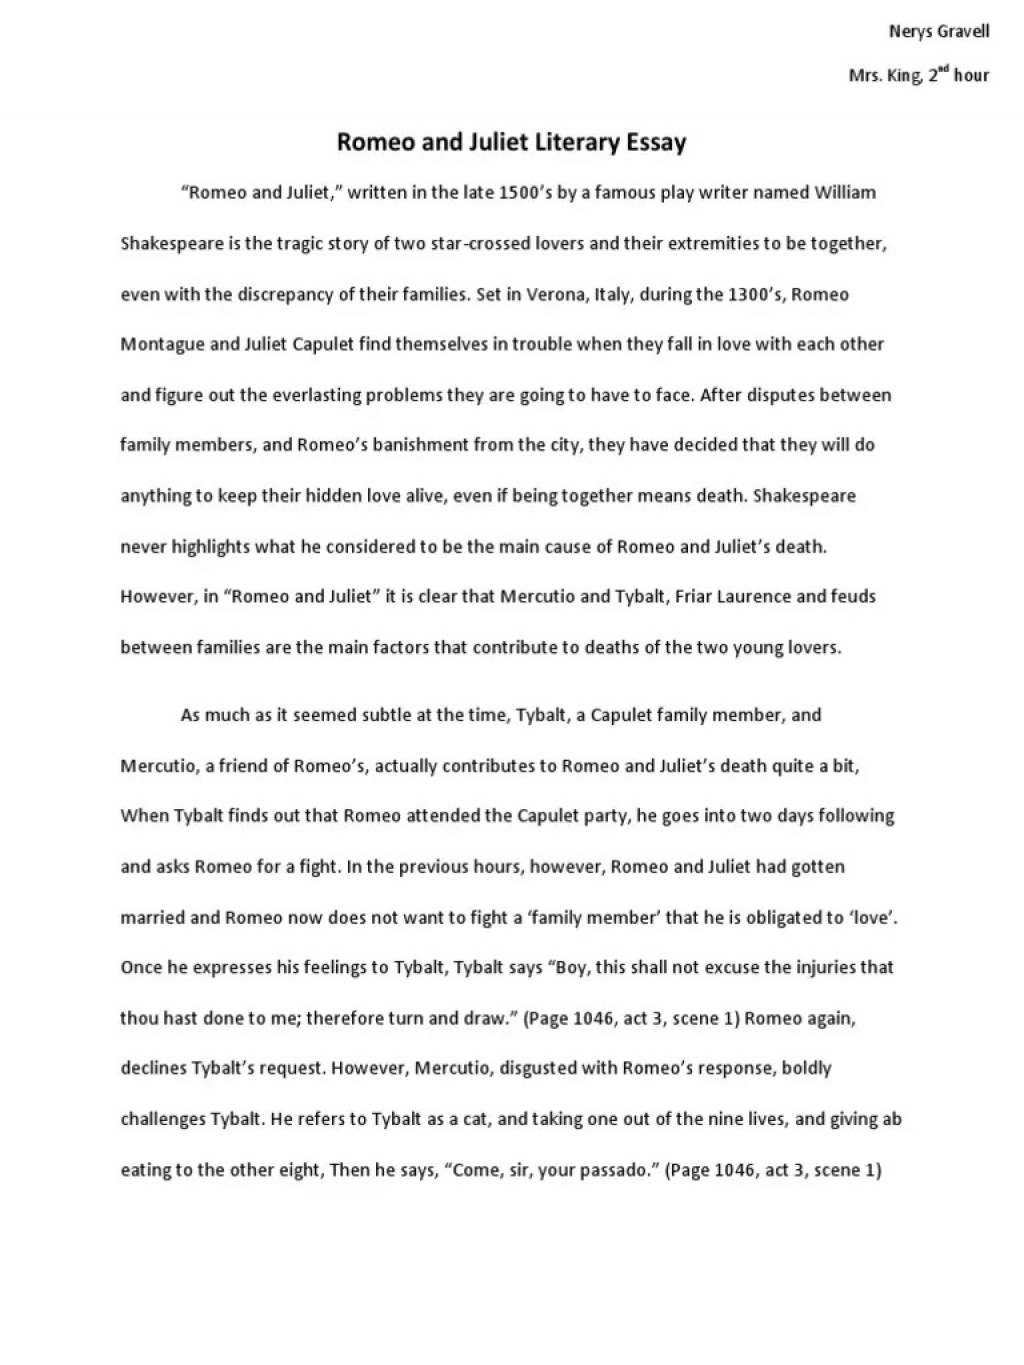 004 Impressive Romeo And Juliet Essay Idea  Who I Responsible For Juliet' Death Introduction Hook Question PdfLarge